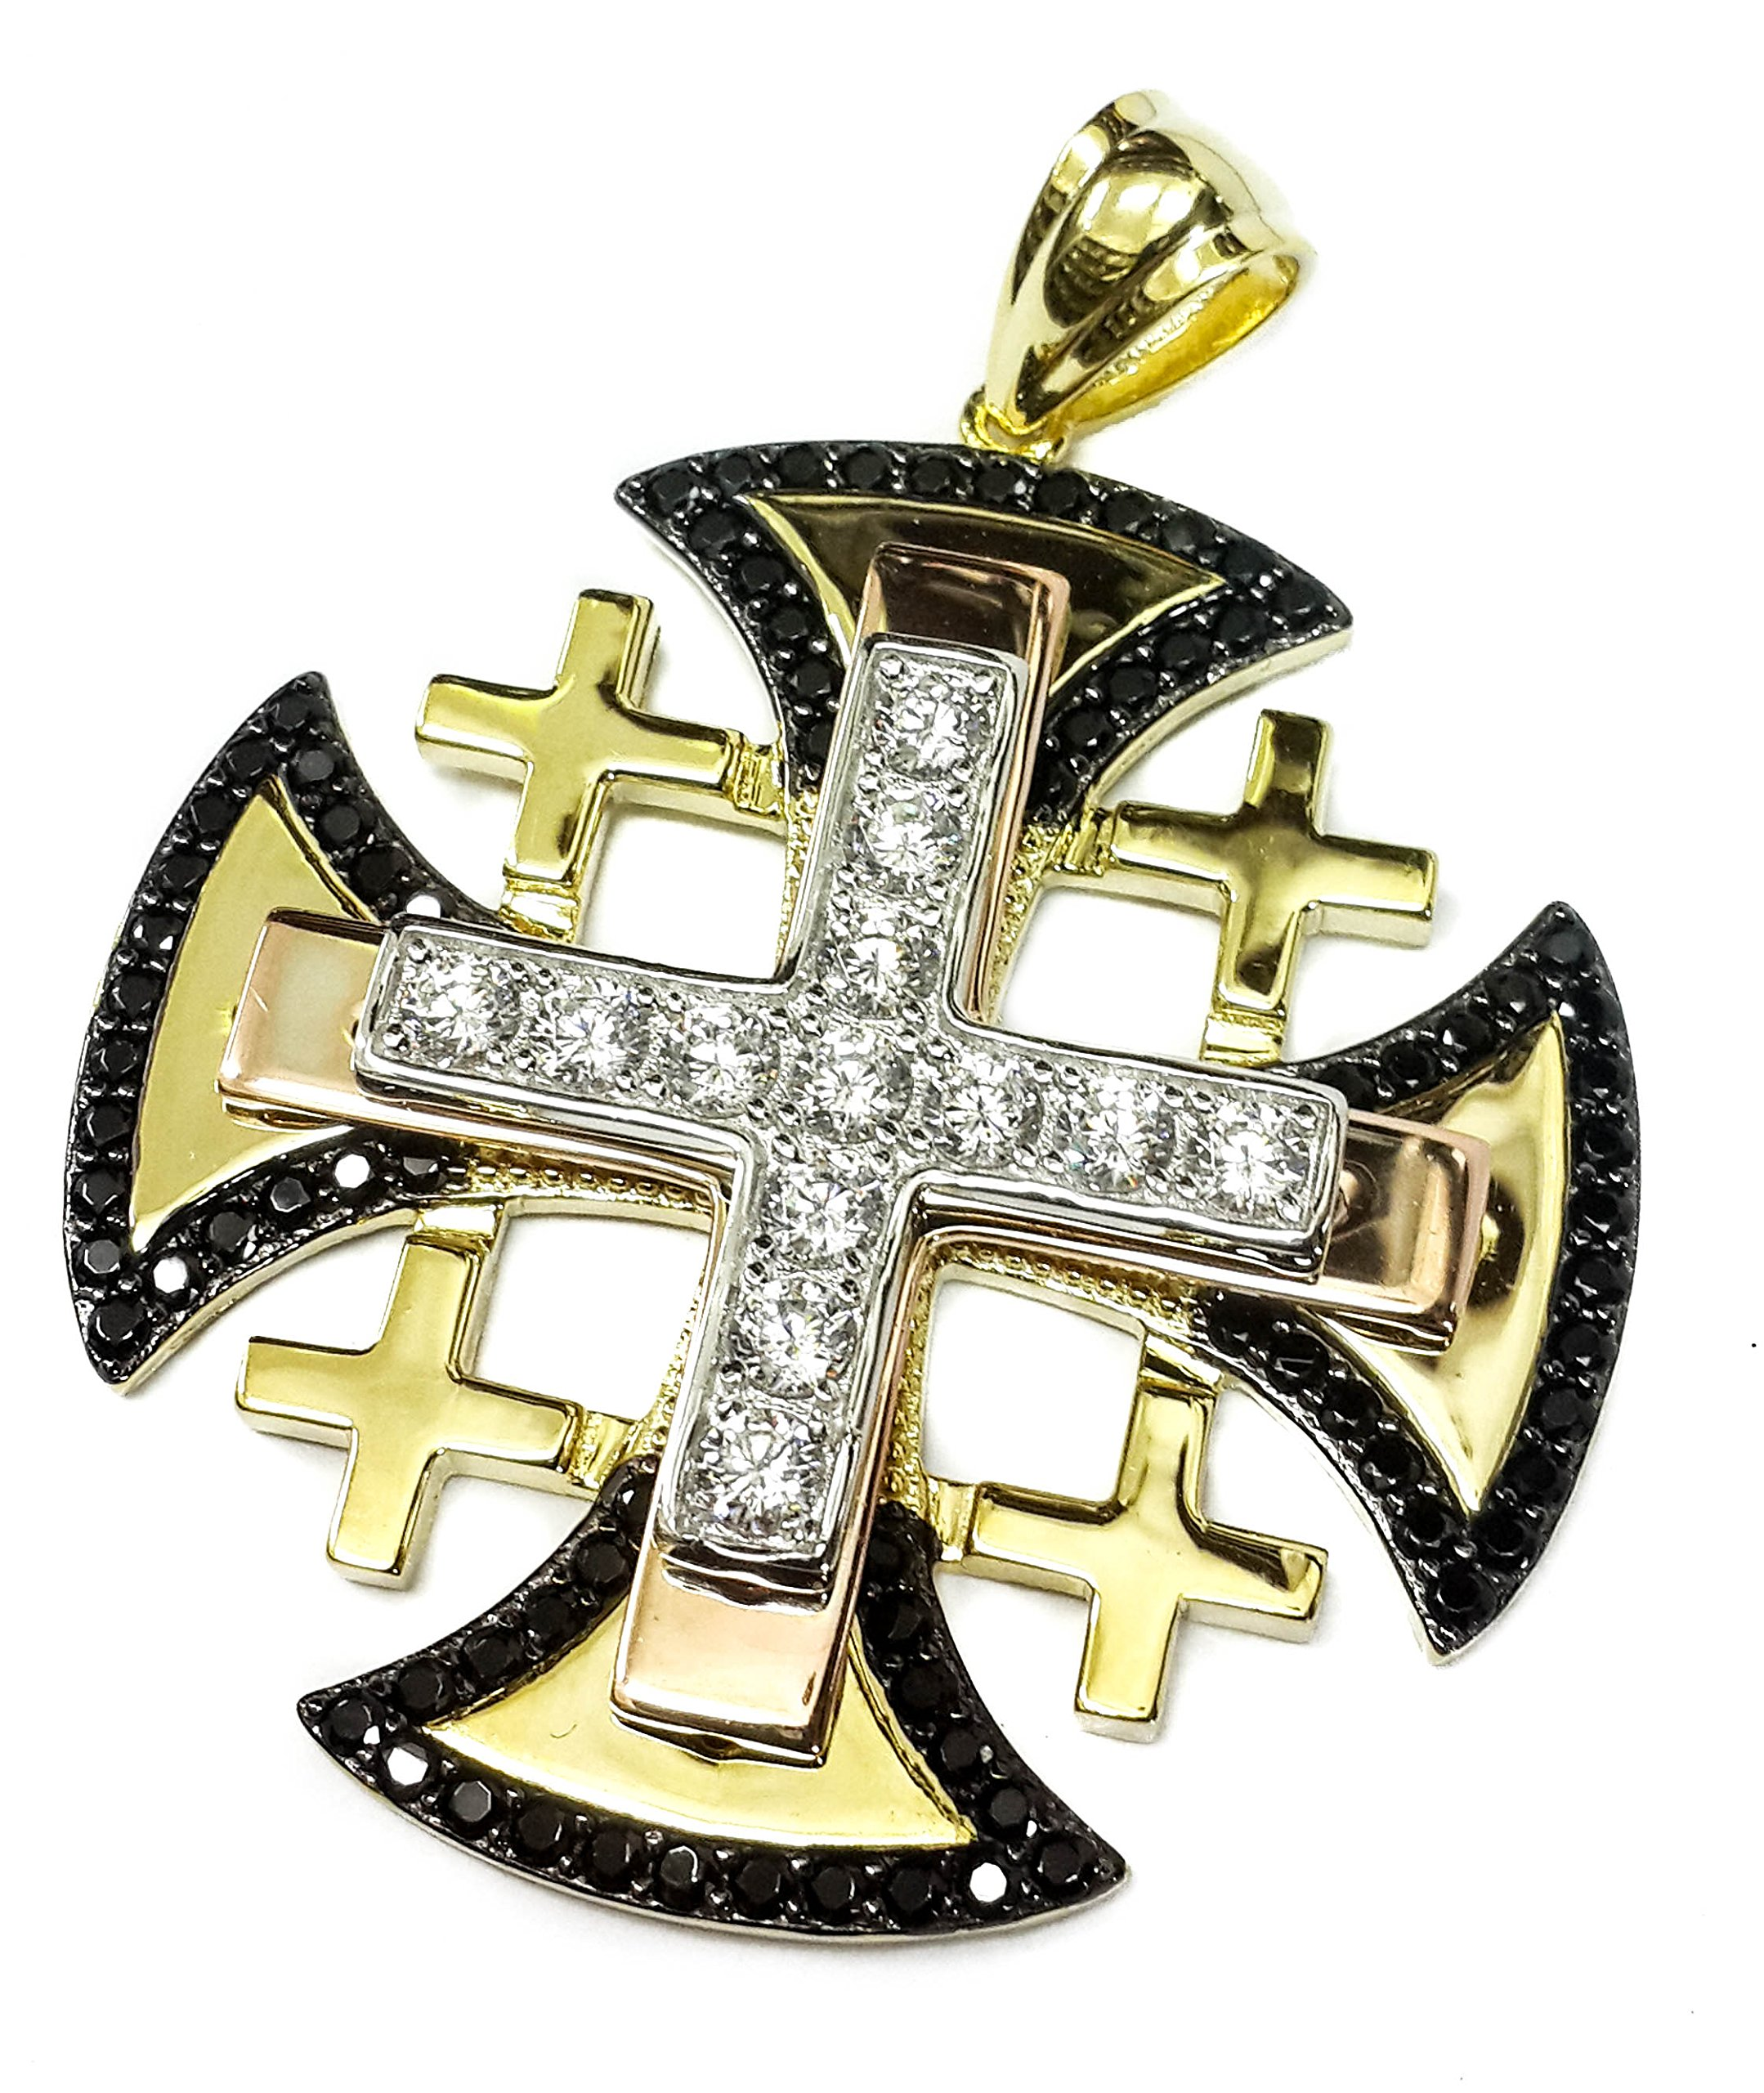 Jerusalem Cross Silver 925 Gold Plated 18 k Black White Crystallized Elements 1.8''